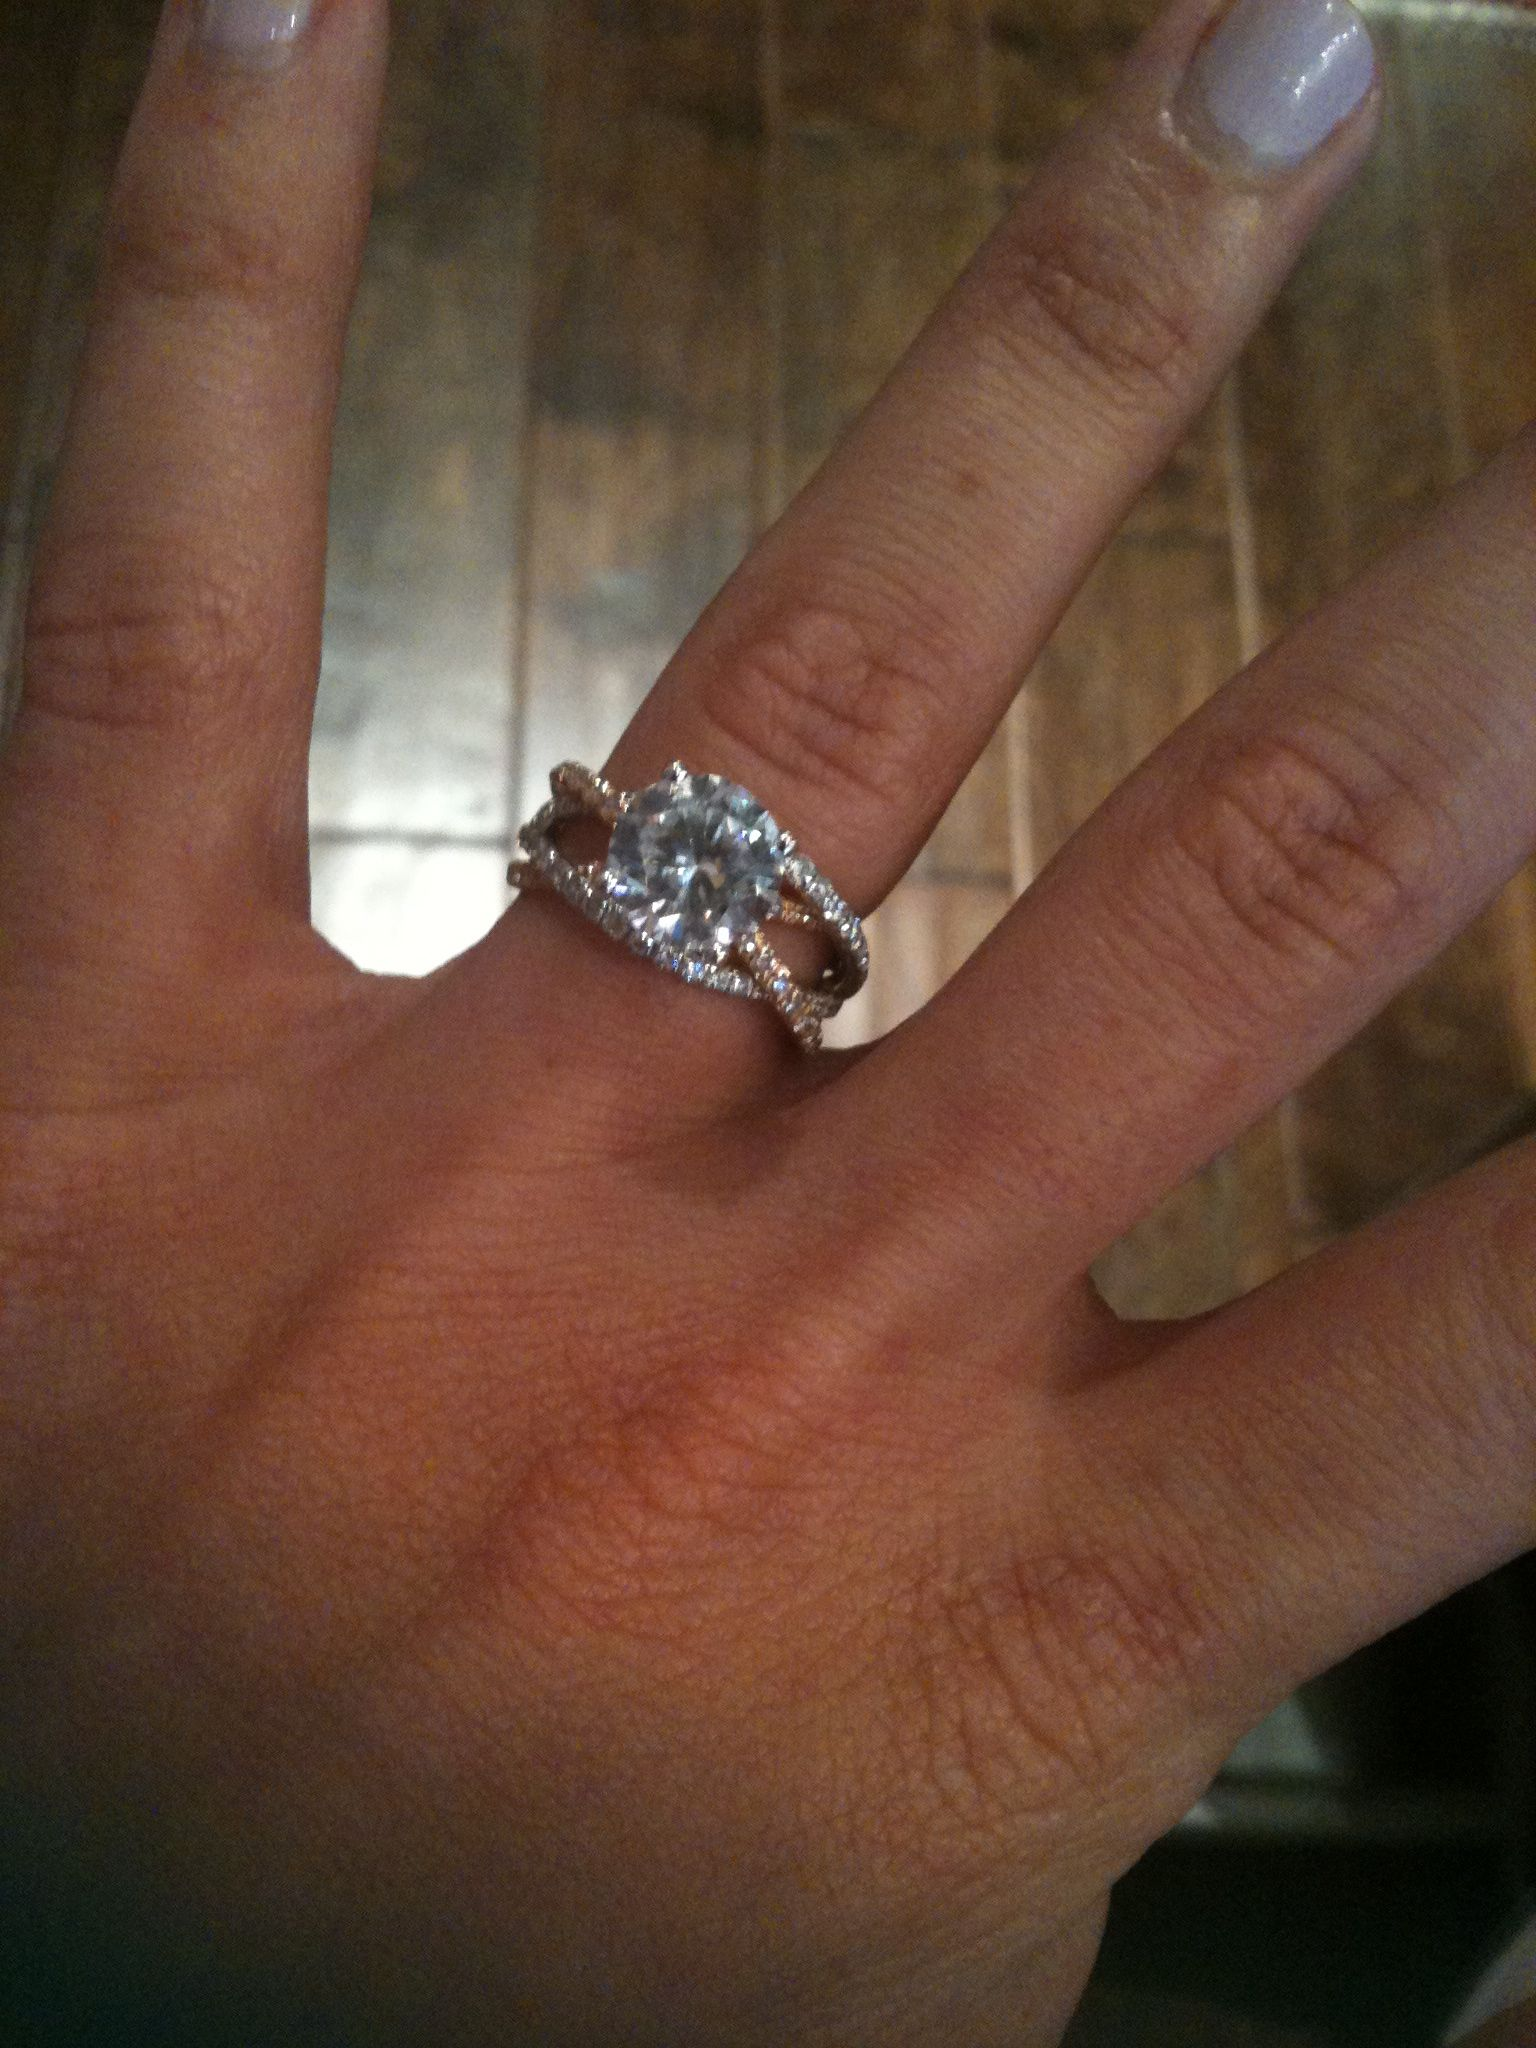 3 band wedding ring msimagines My Engagement Ring by MARK SILVERSTEIN IMAGINES